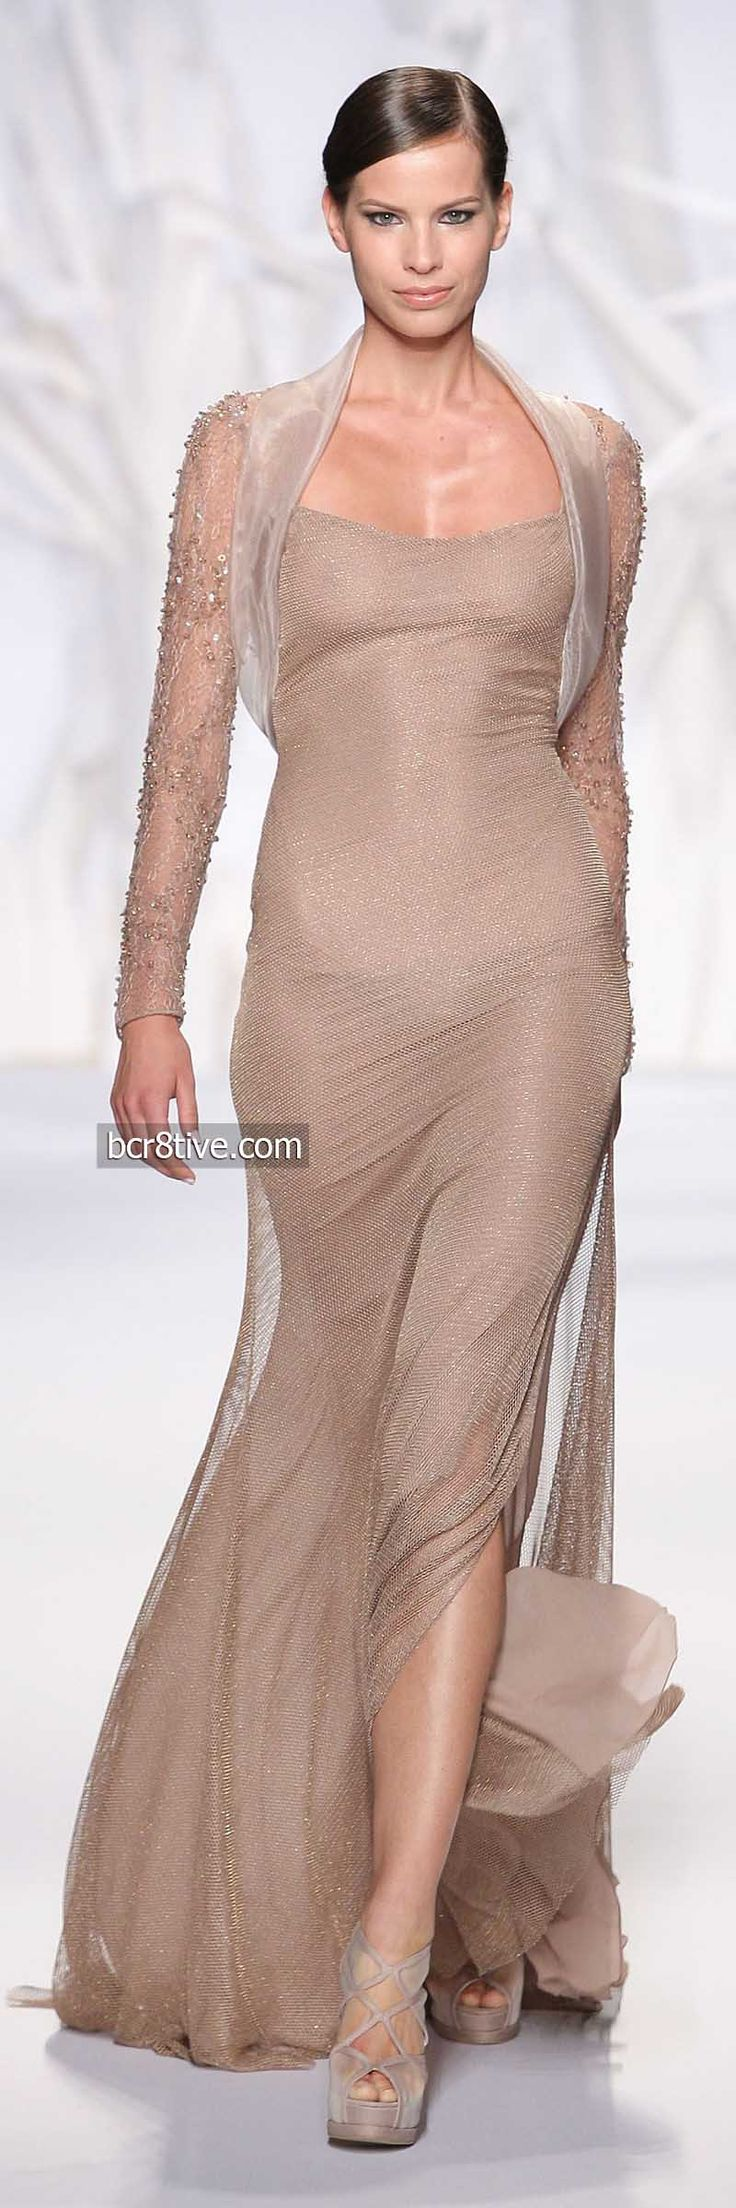 Abed Mahfouz Fall Winter 2014 Haute Couture ★★ Collection on ABED MAHFOUZ board ★★